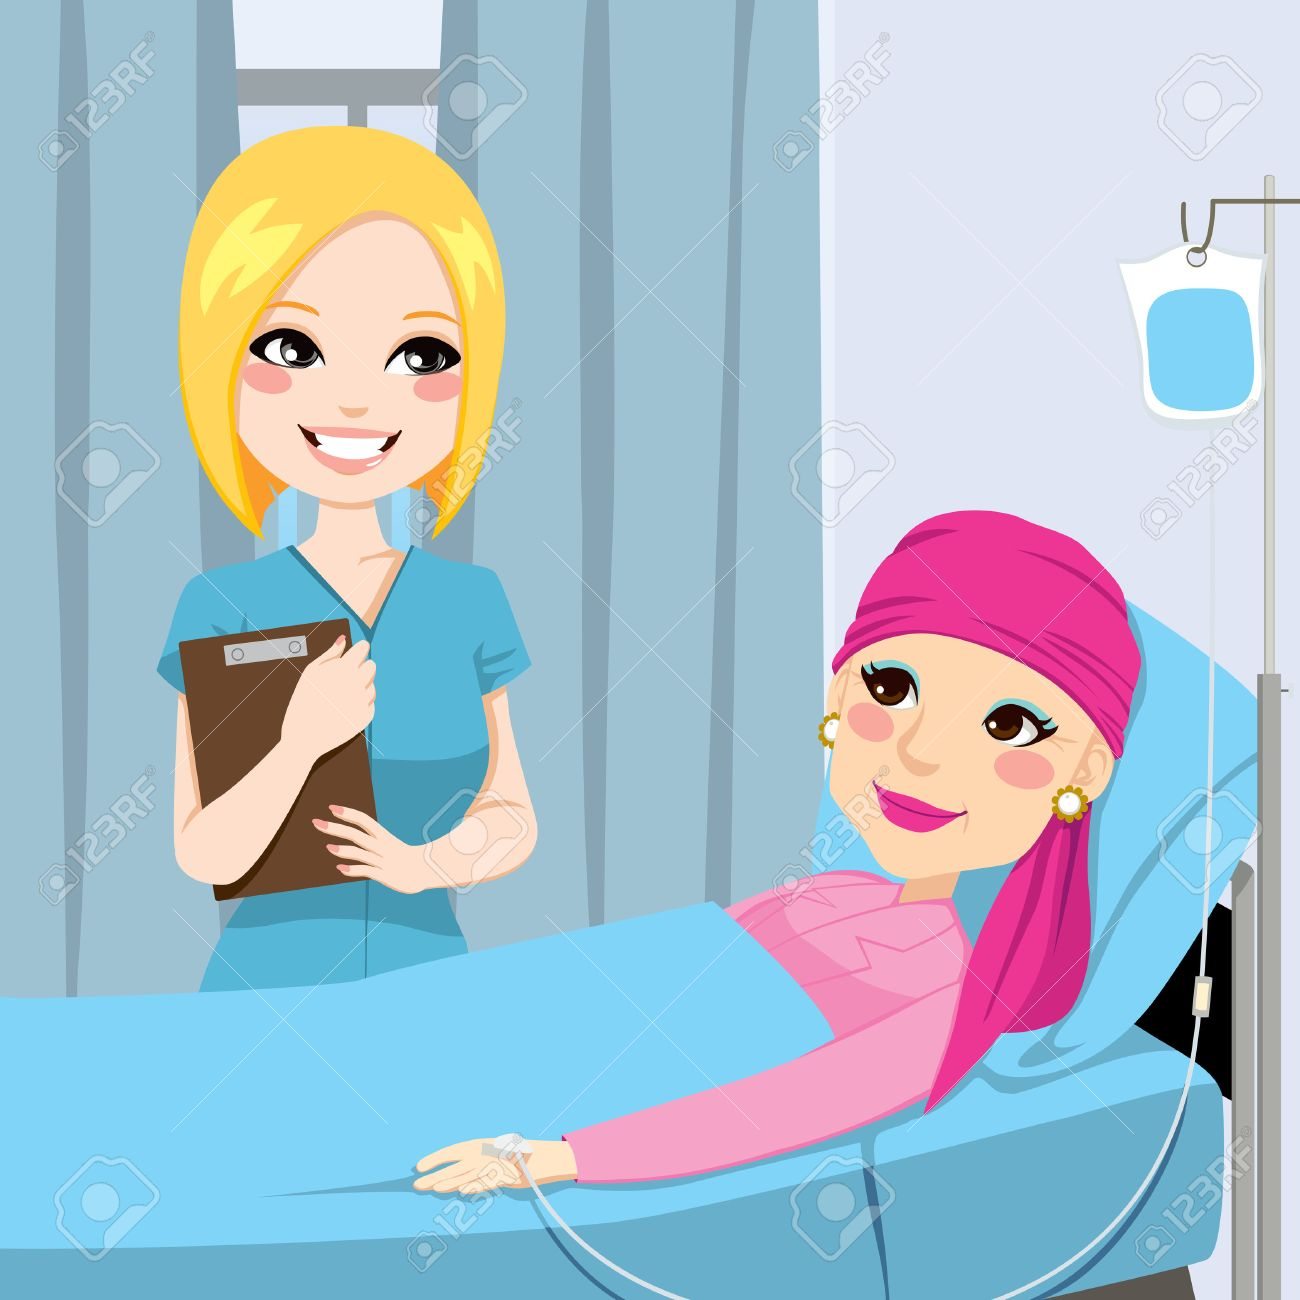 Nurse visit a senior old woman patient lying down on hospital bed receiving intravenous chemotherapy treatment for cancer Stock Vector - 22964398